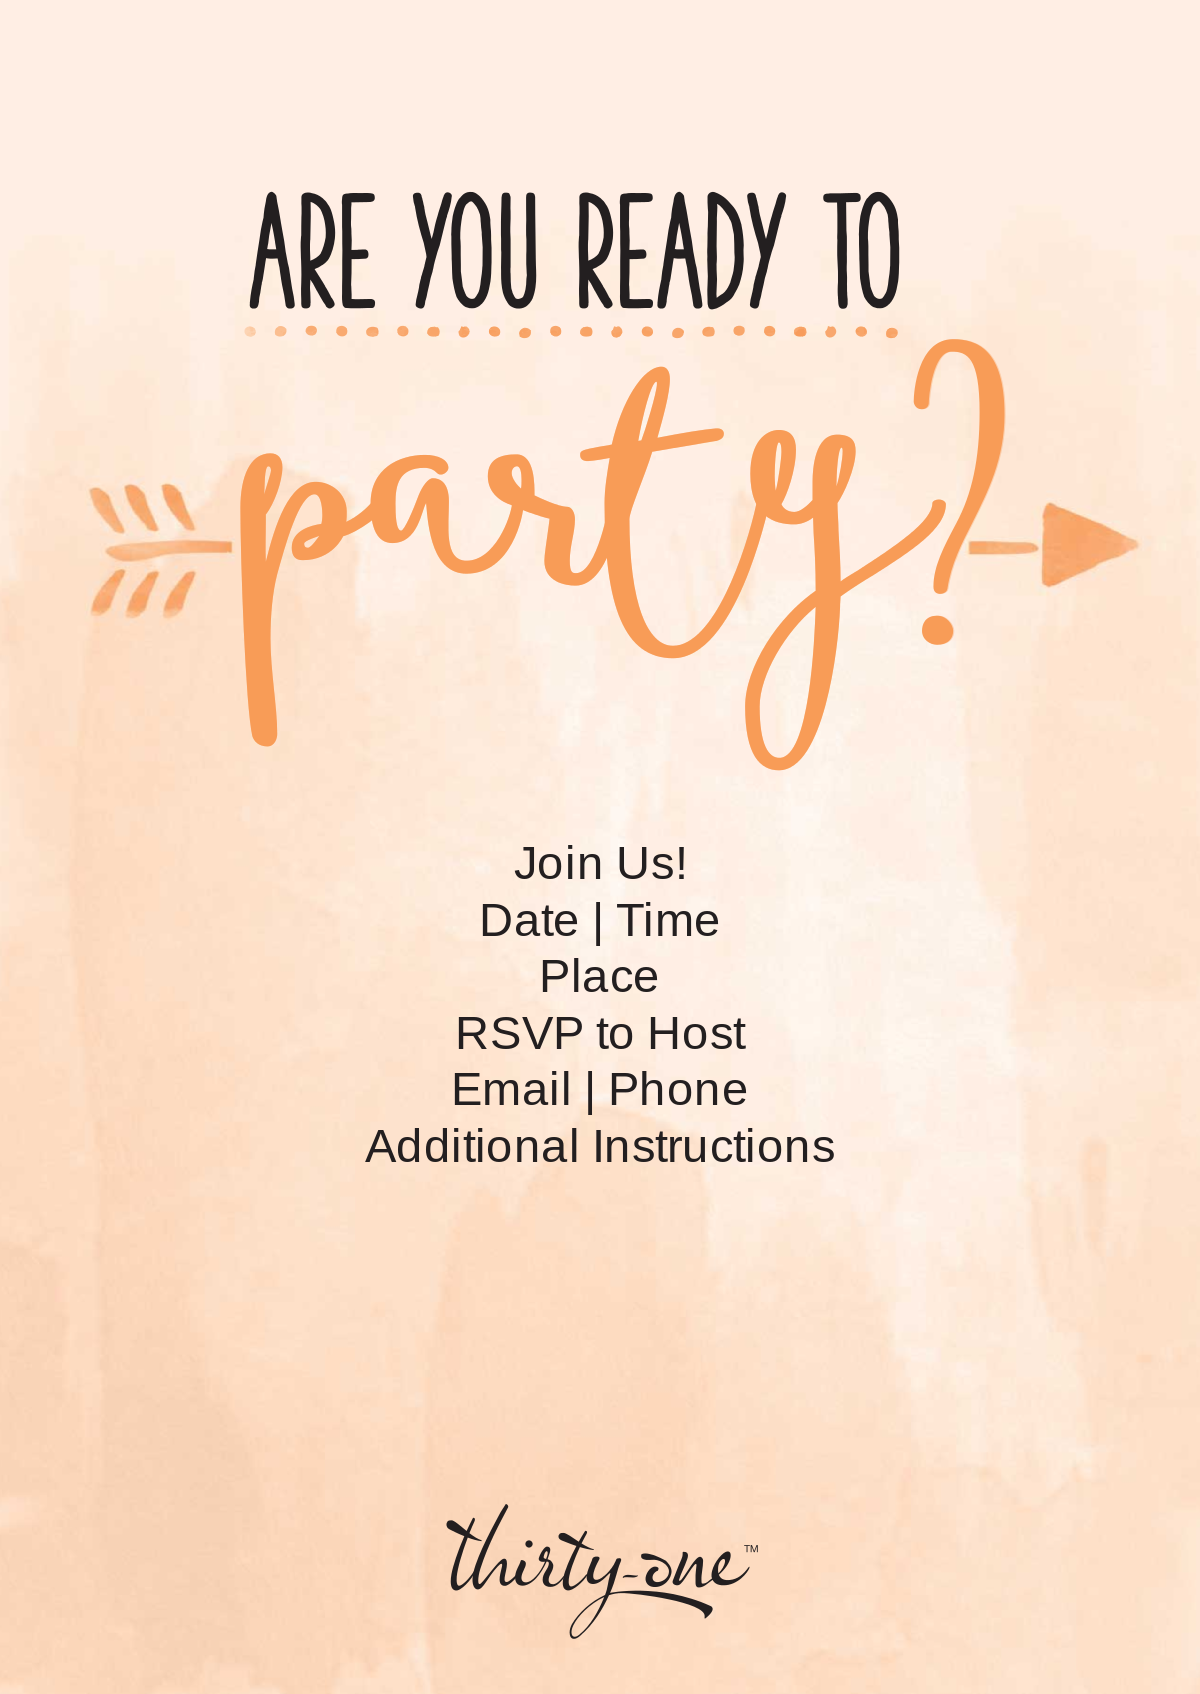 Thirty-One+Gifts+Launch+Party+Reminder | Invitations | Pinterest ...